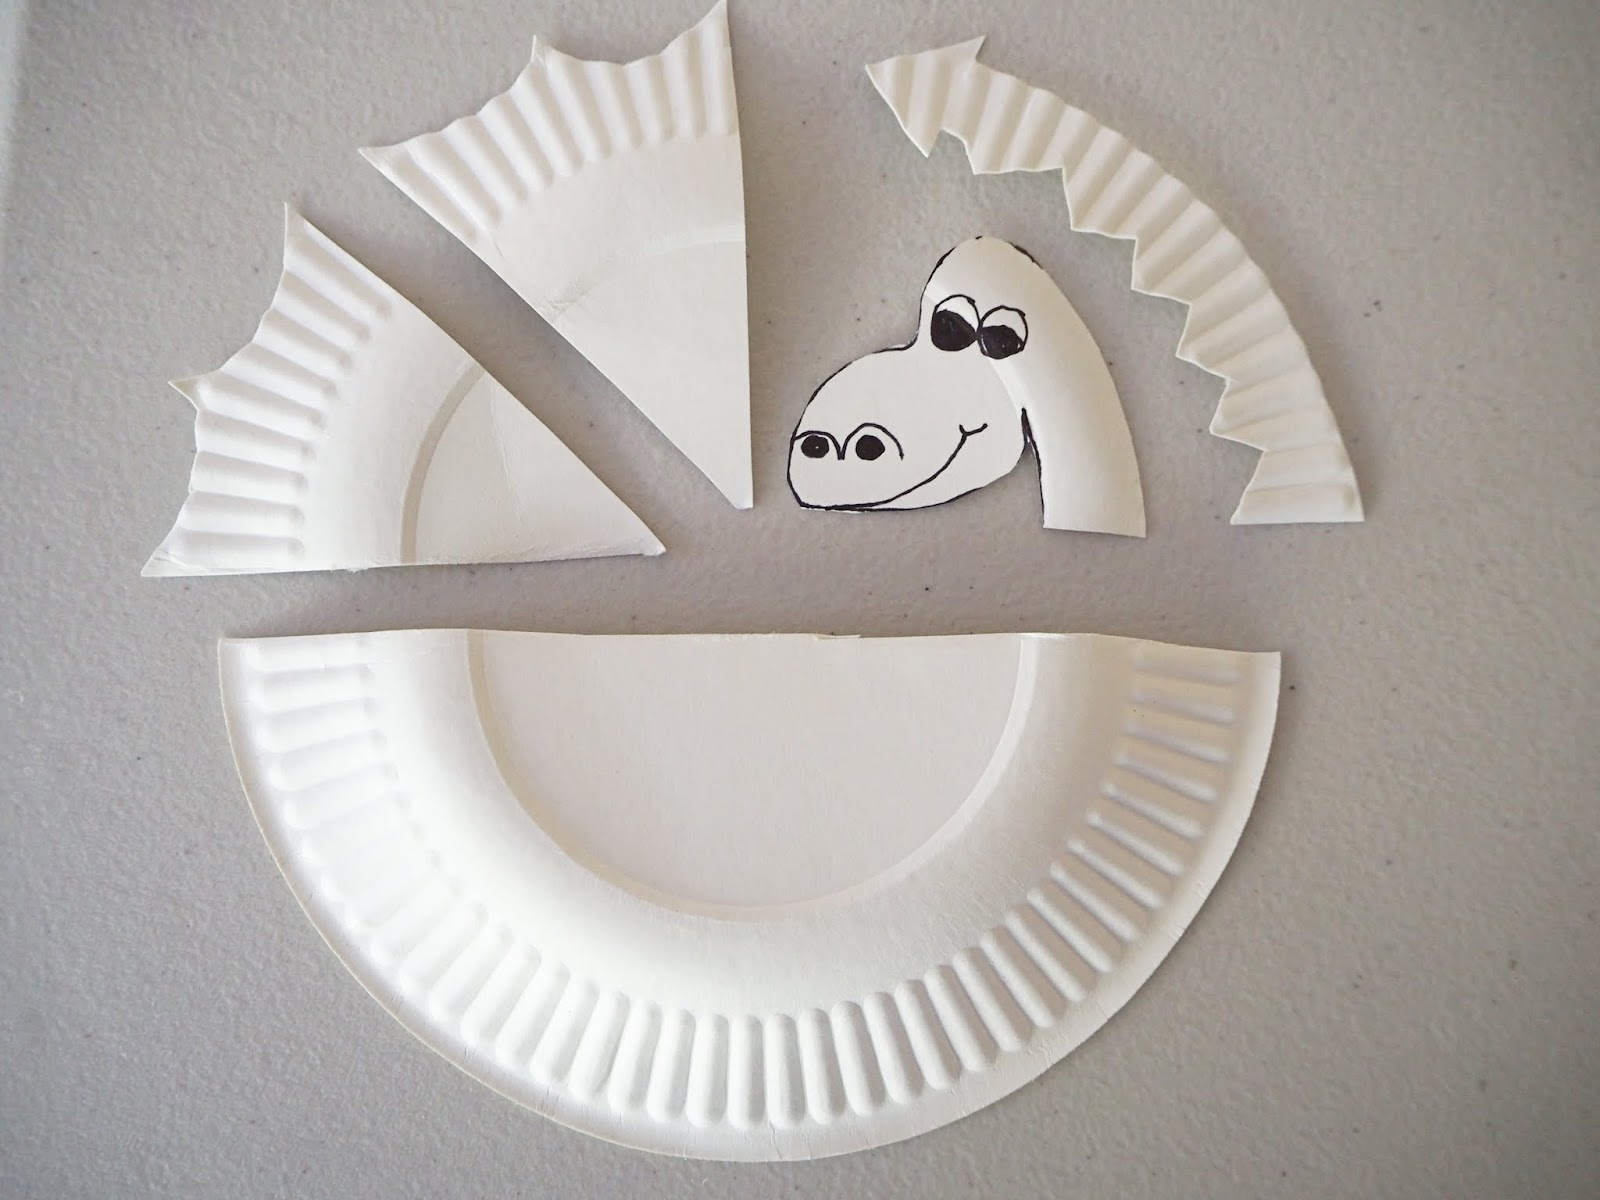 & Learn with Play at Home: Simple Paper Plate Dragon Craft